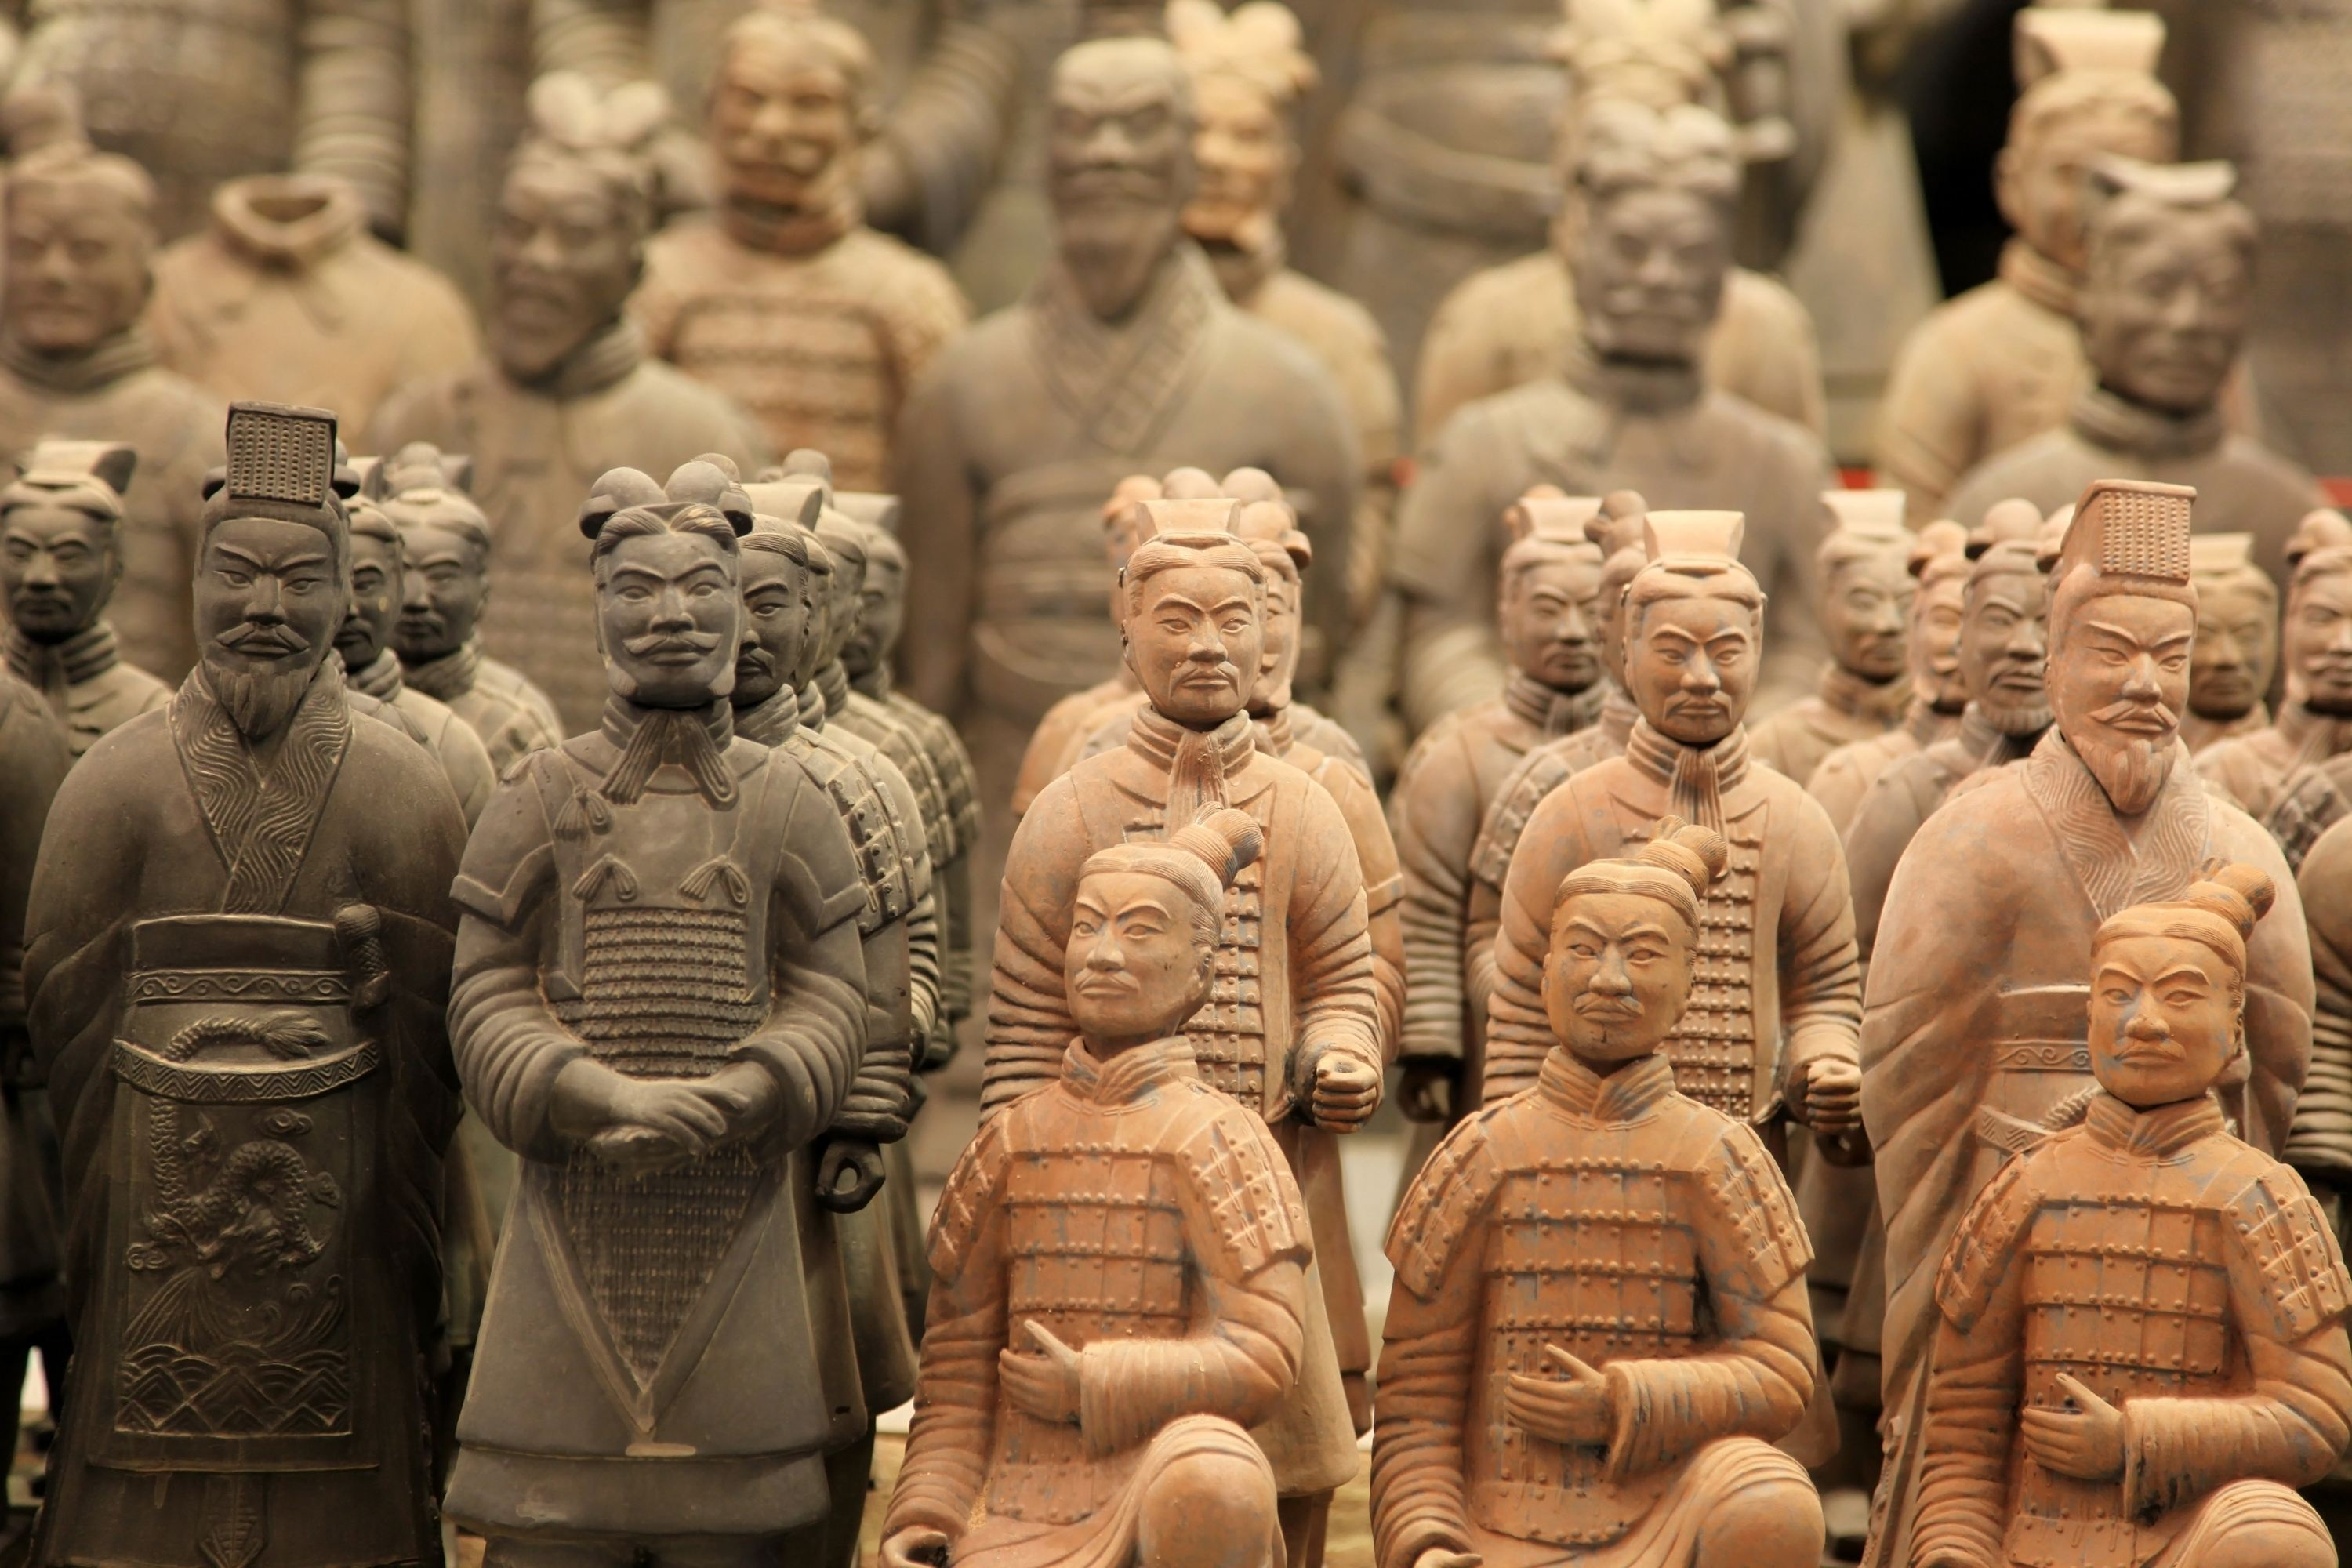 The Museum of Terra-Cotta Warriors and Horse